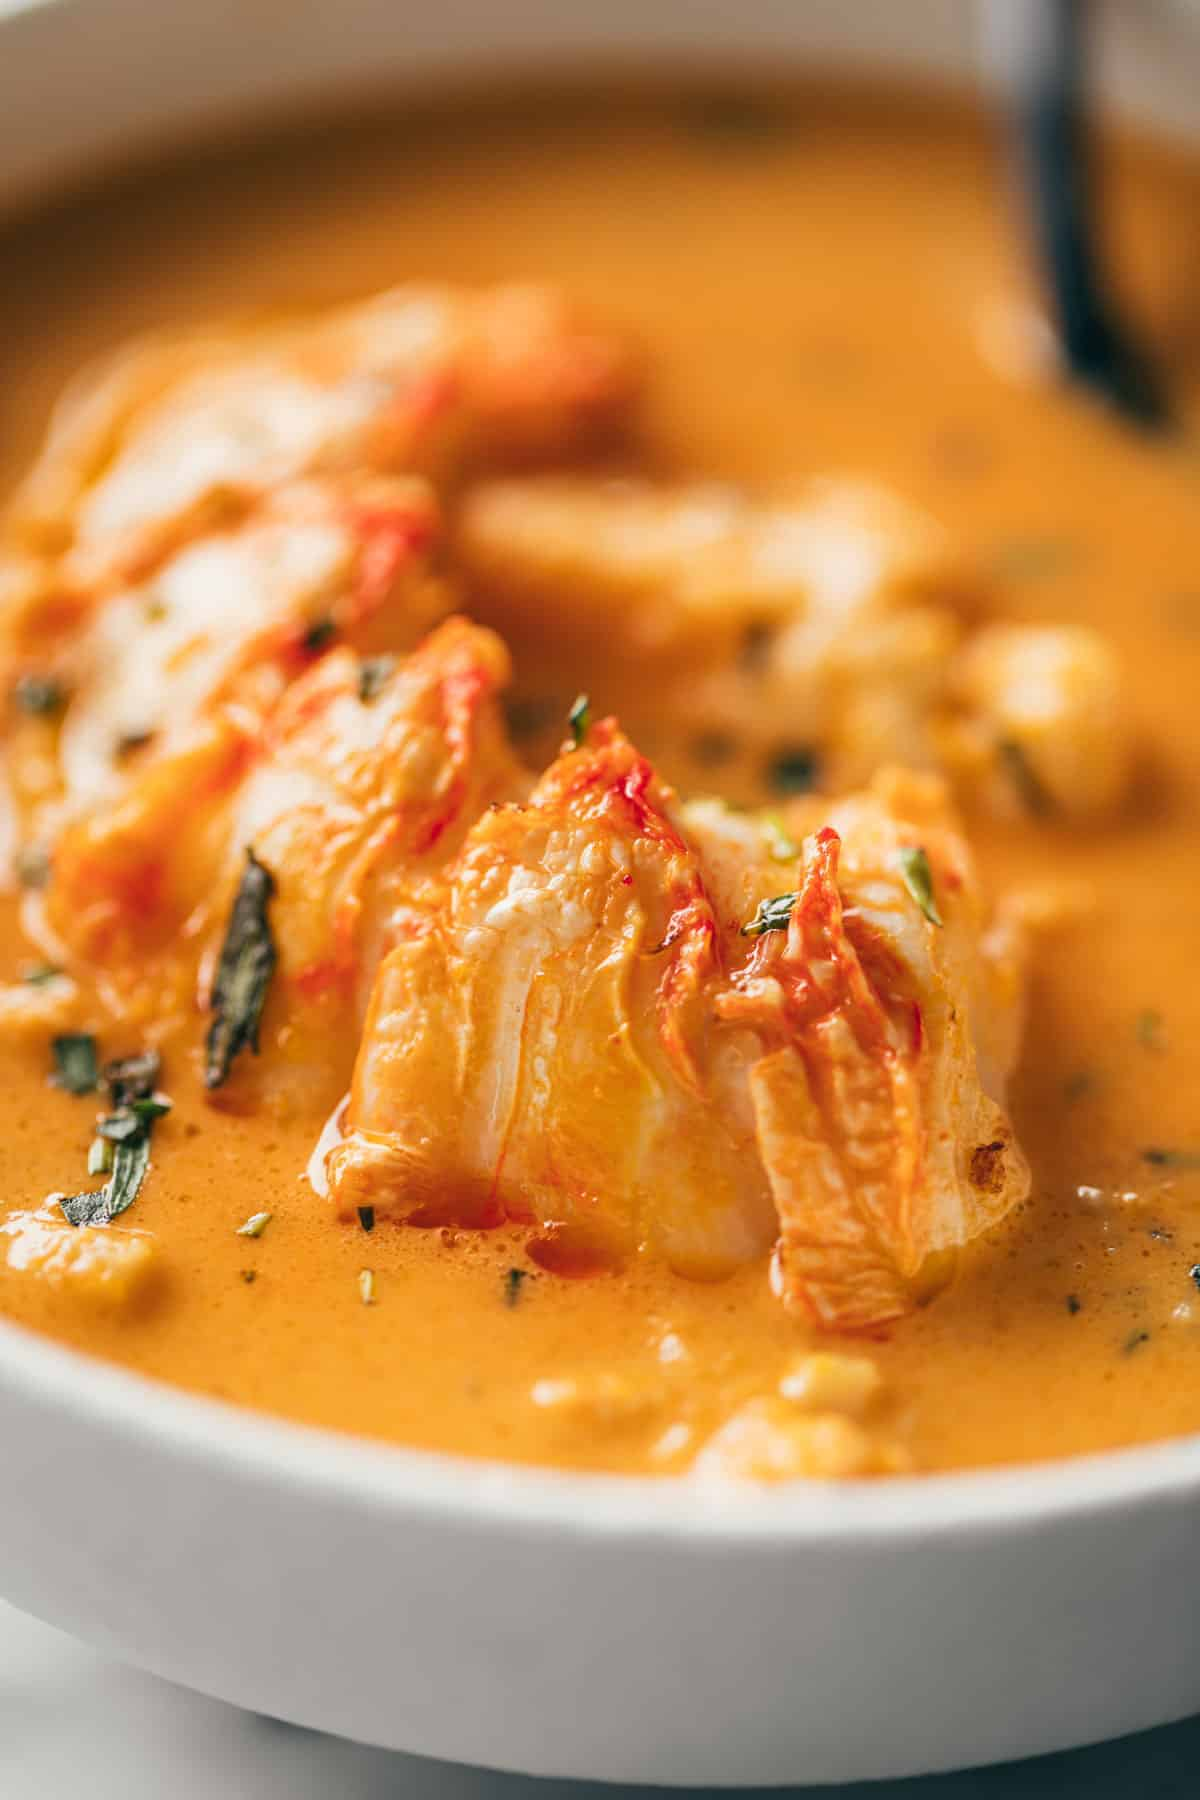 Lobster bisque with lobster tail meat #lobstertails #lobsterbisque